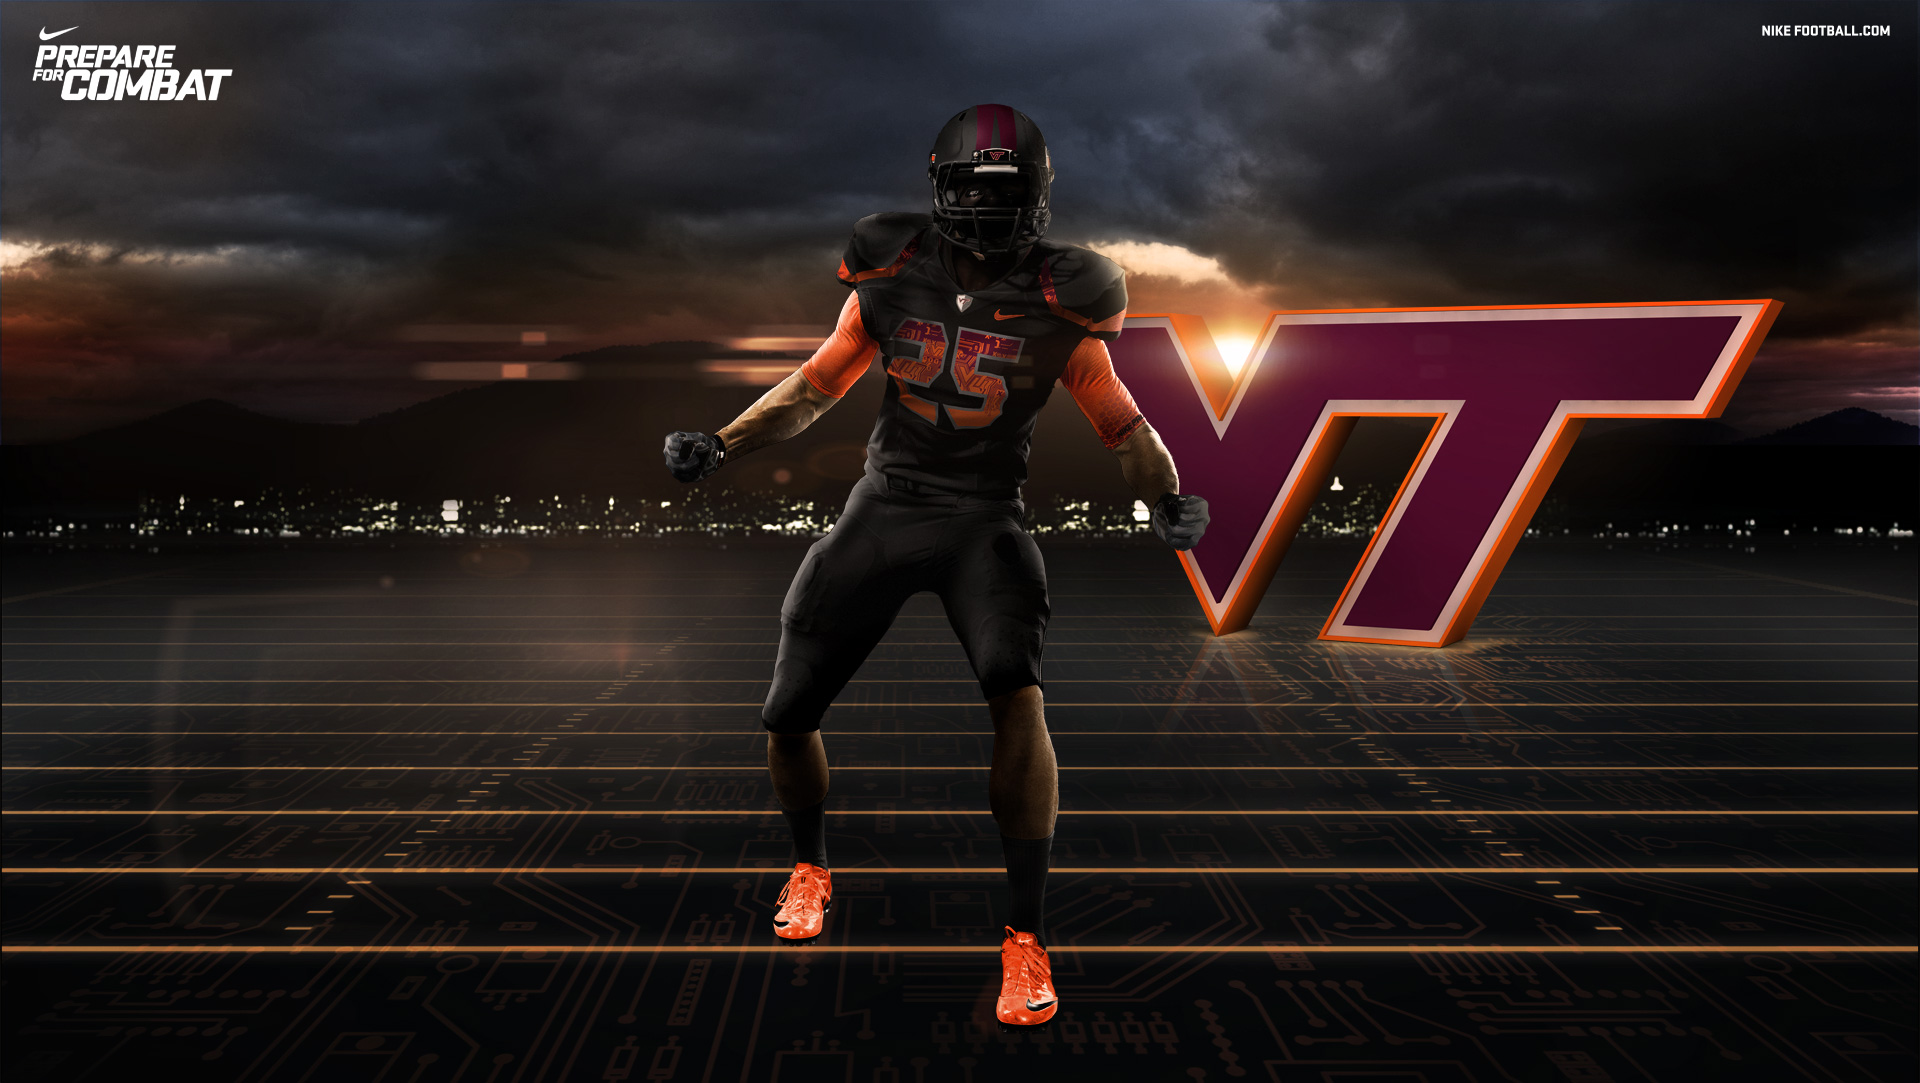 American Football Wallpapers Maker Pro: Virginia Tech Wallpapers